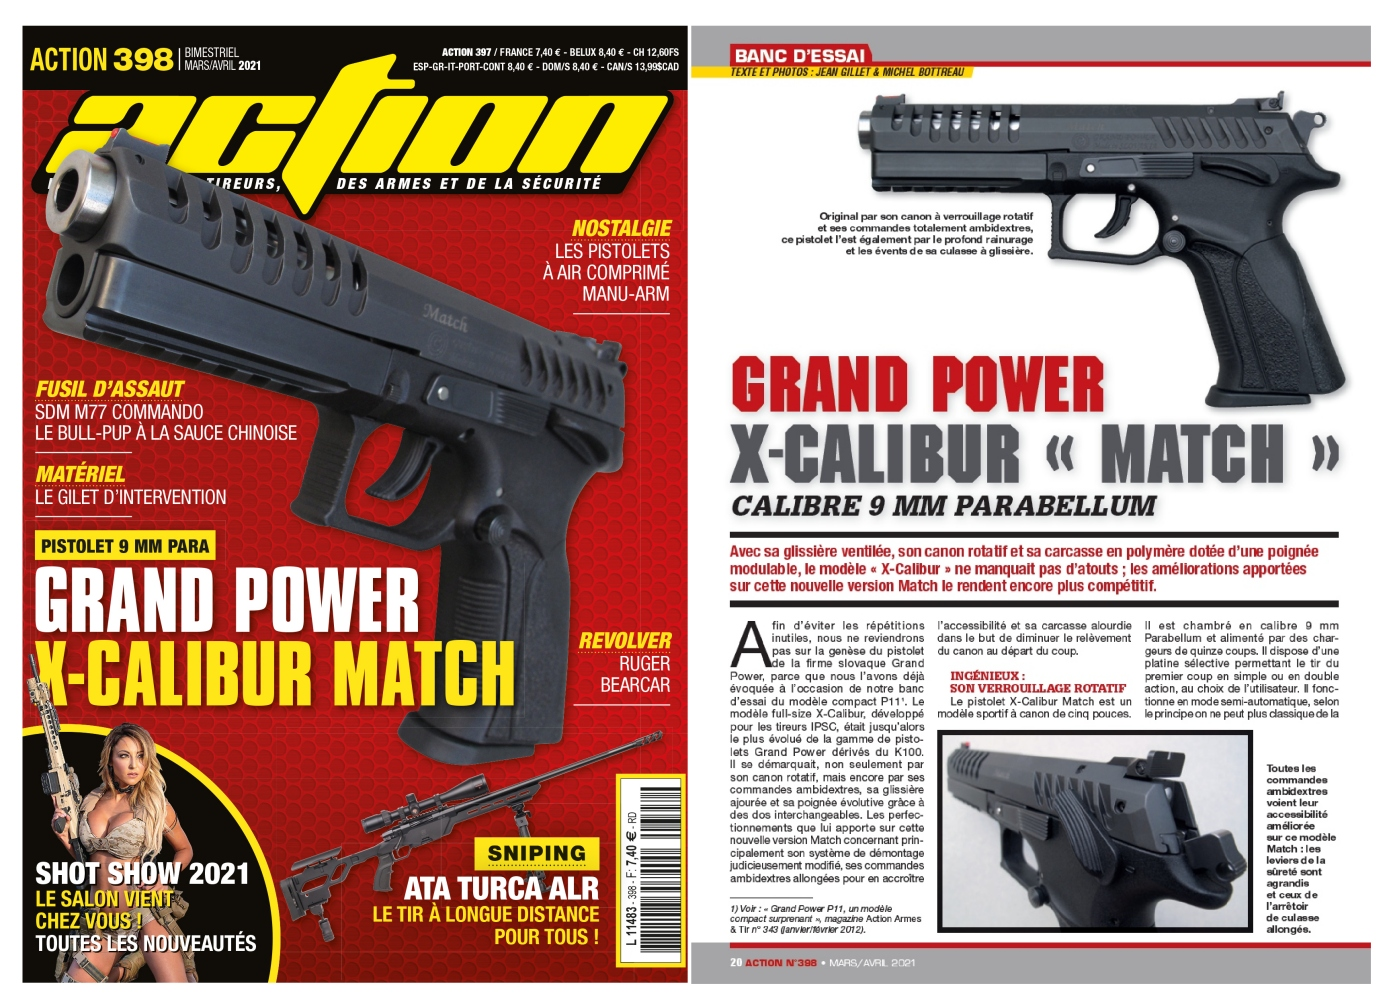 Le banc d'essai du pistolet Grand Power X-Calibur Match a été publié sur 6 pages dans le magazine Action n°398 (mars/avril 2021).